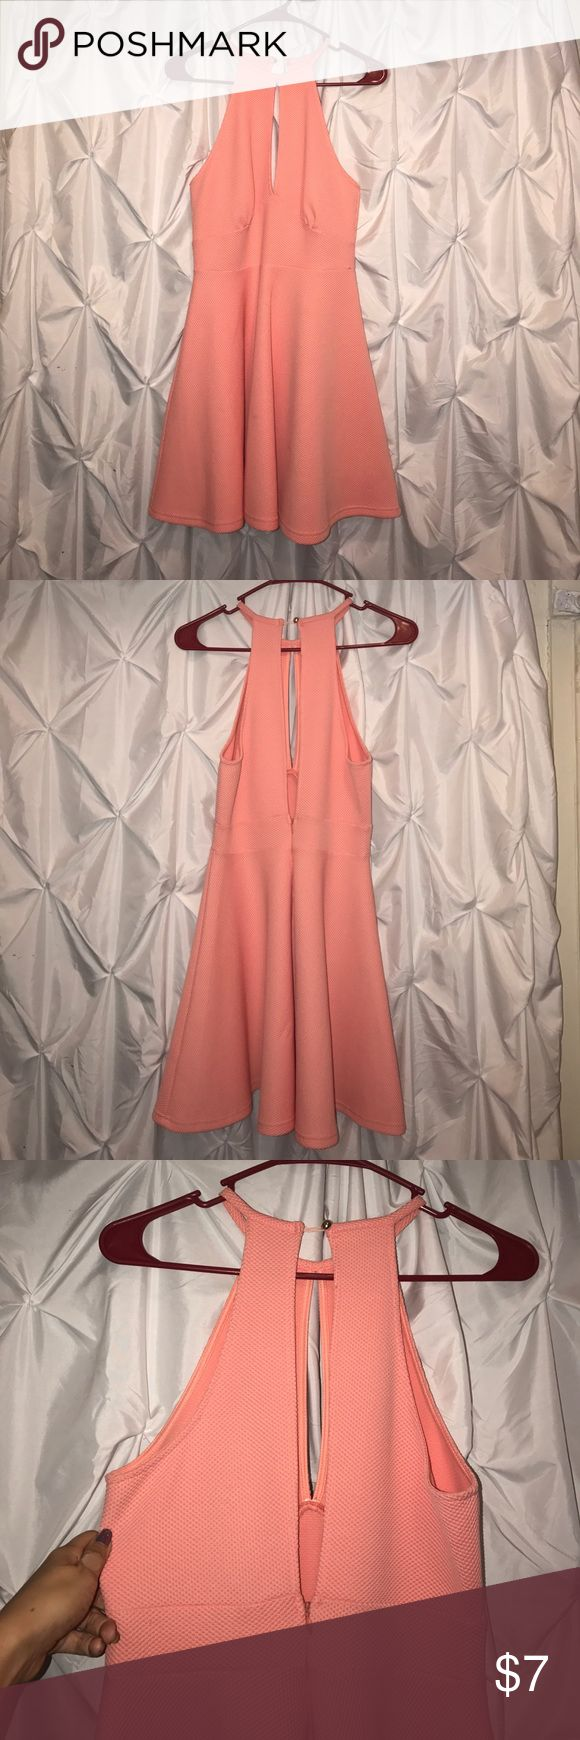 A'gaci pink mini dress Super thick fabric so you can't see any bra inserts or underwear through it. Worn one time. It's really flattering on. a'gaci Dresses Mini